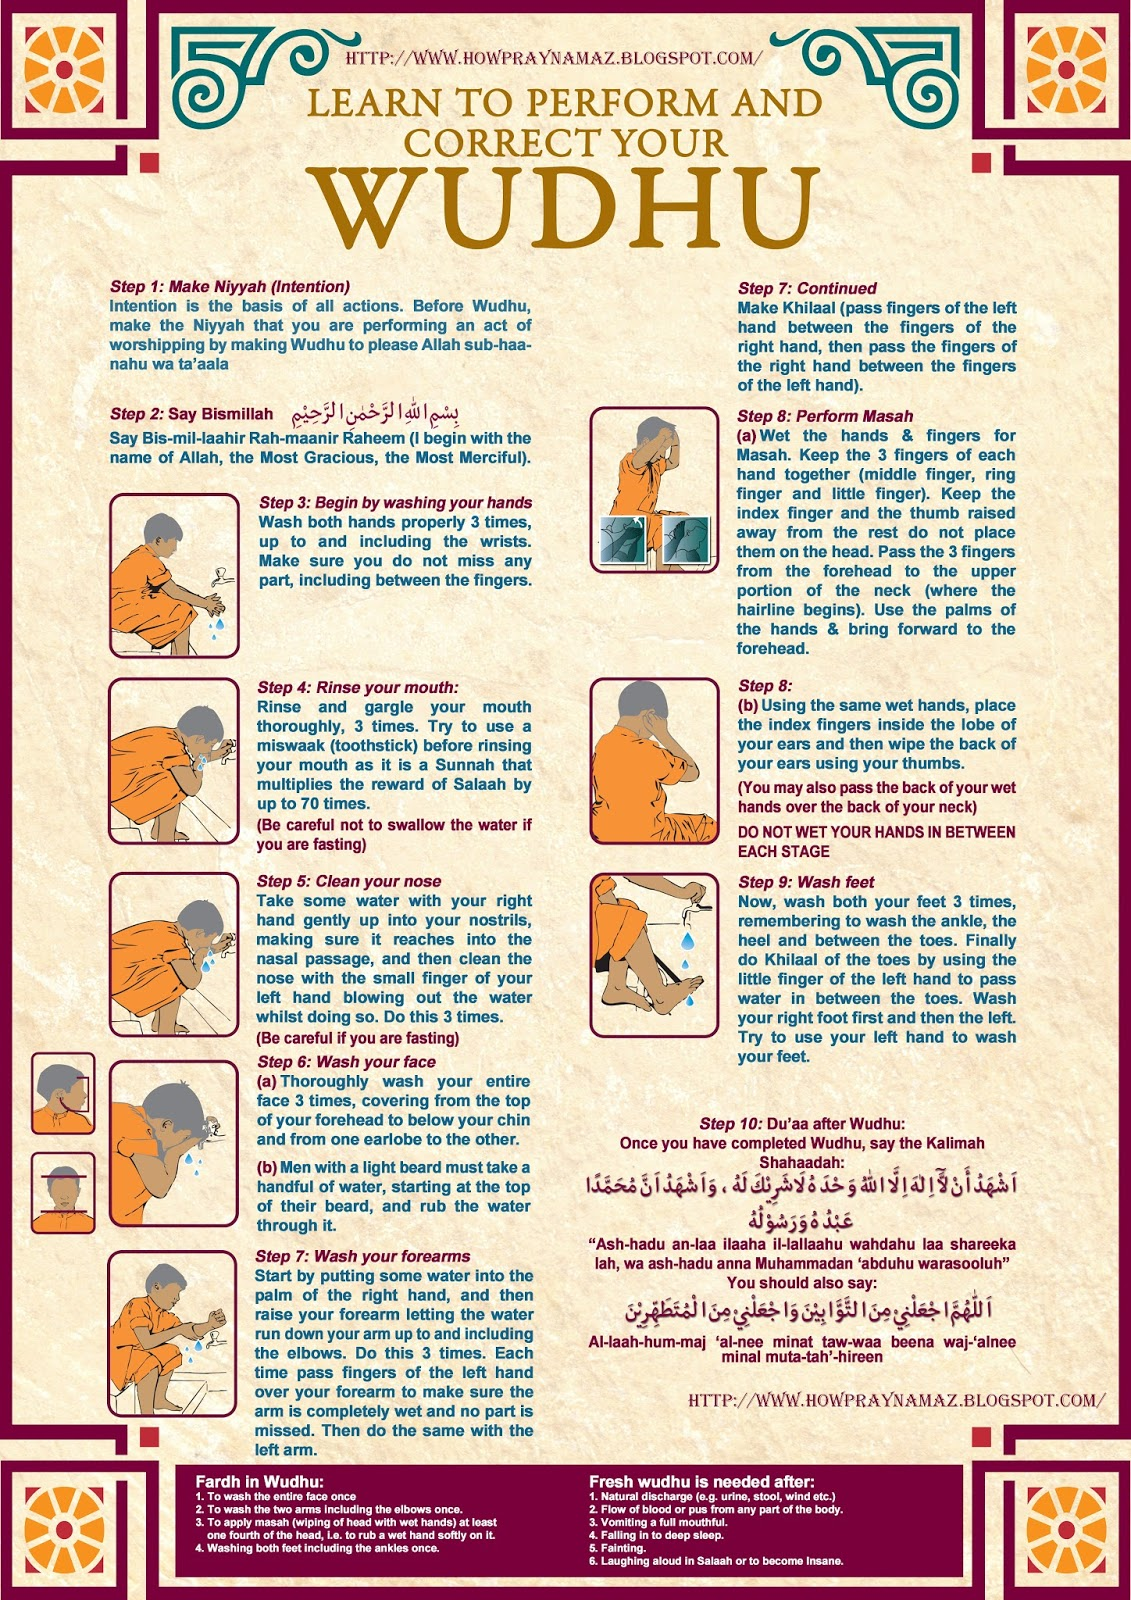 How To Perform Wudu Or Ablution